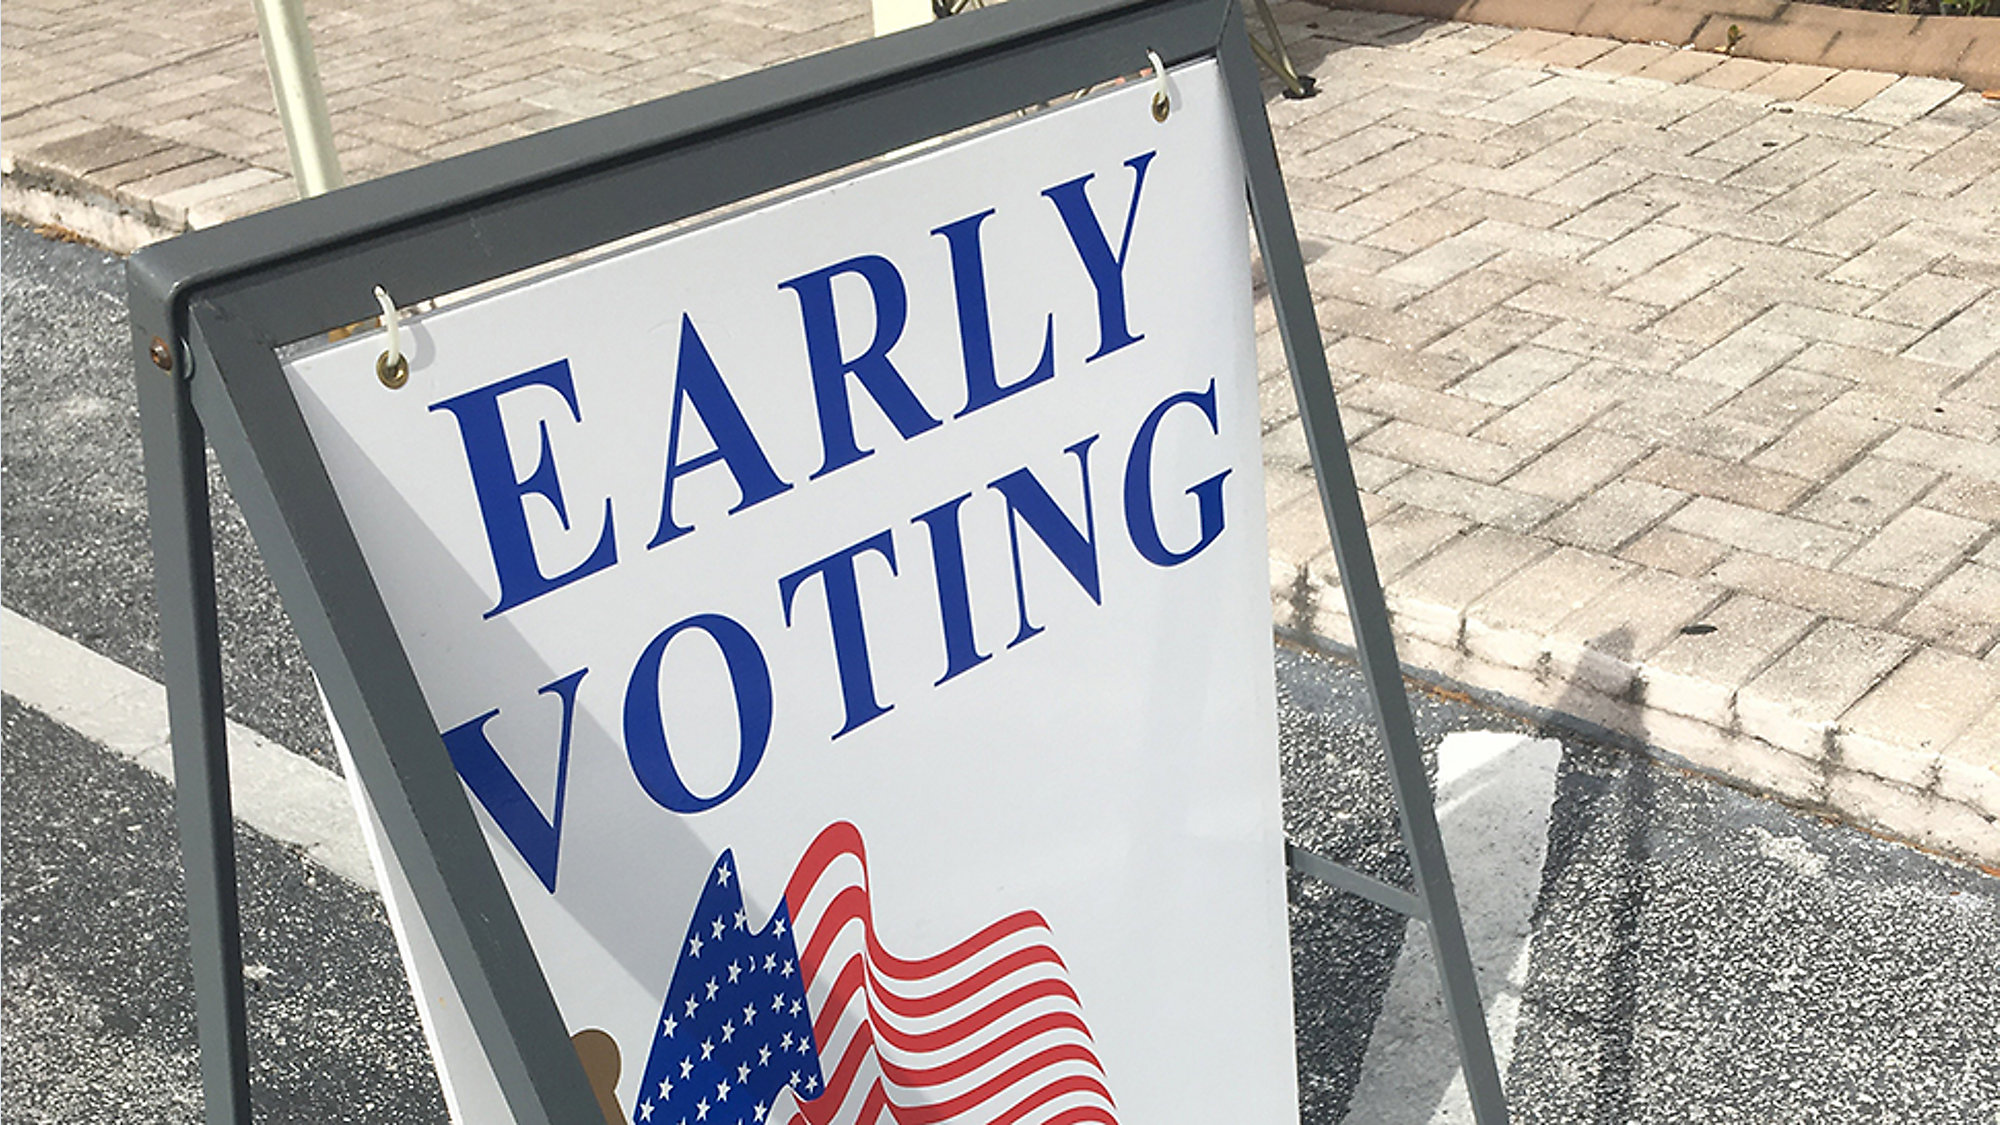 DeSantis Asks State High Court to Rule on Felon Voting